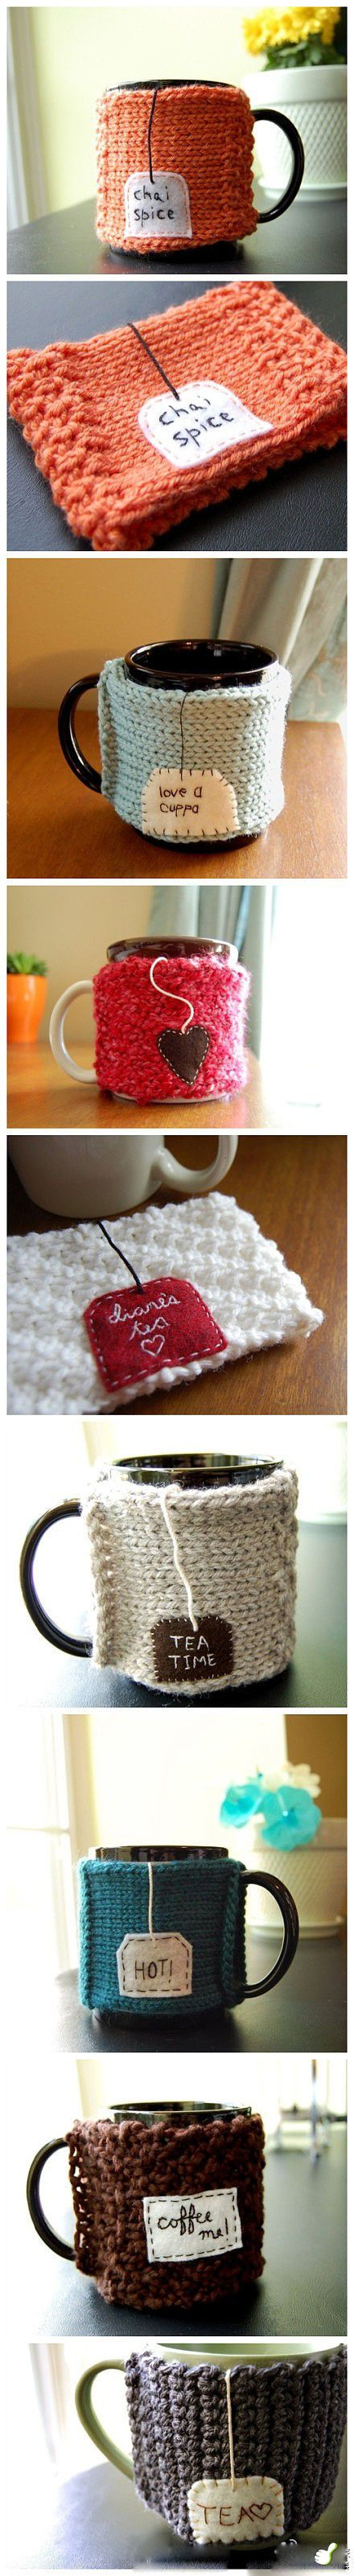 Genius way to keep hot drinks warm, and they're super cute :)